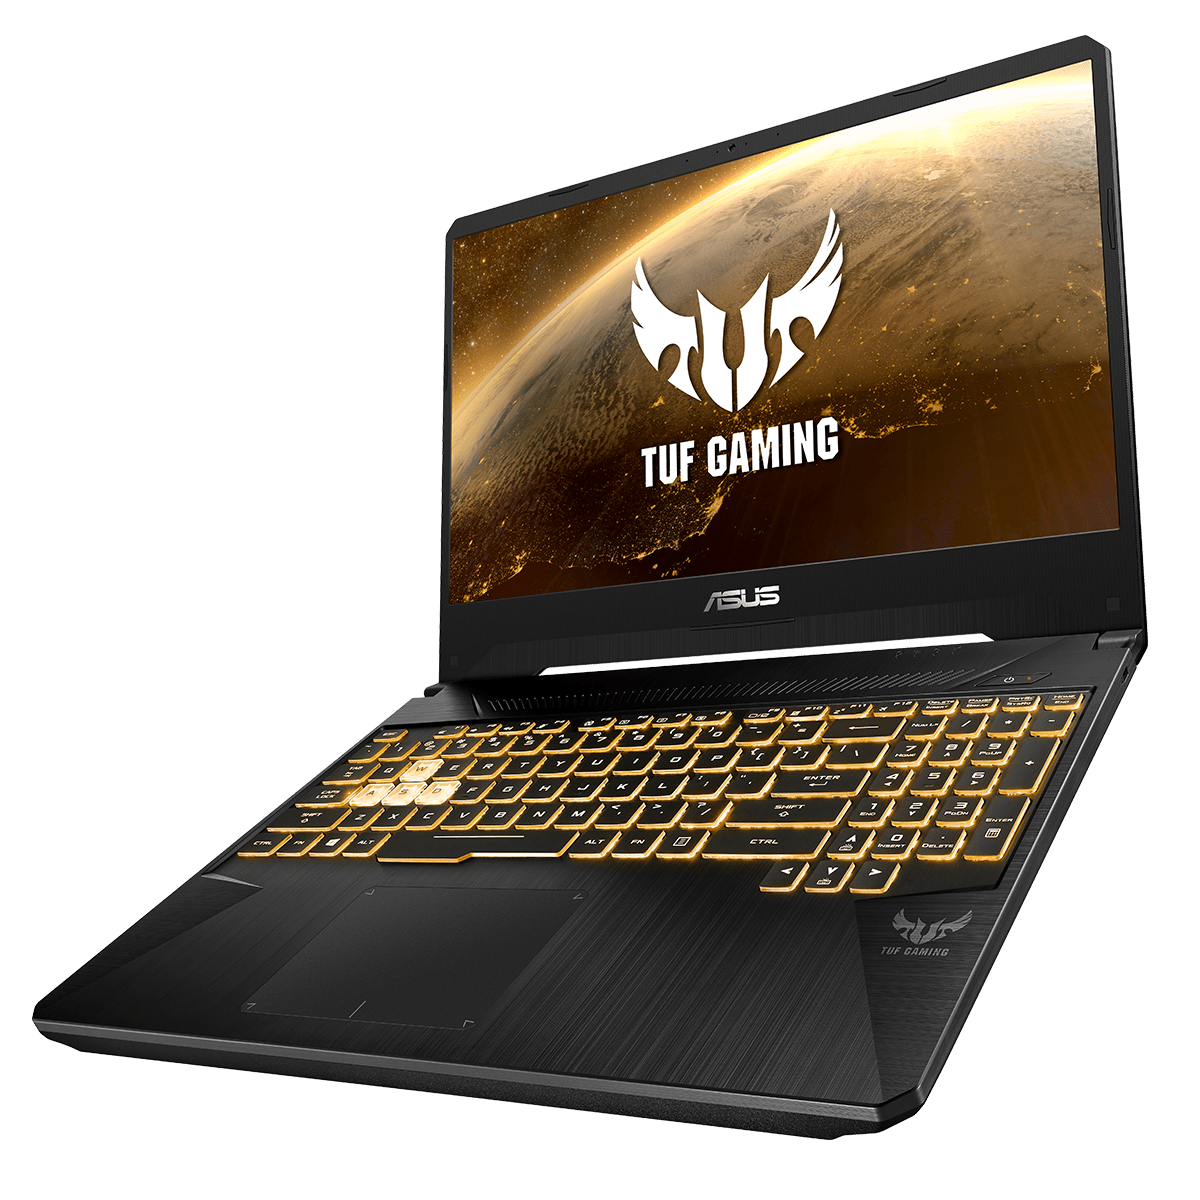 ASUS TUF505DU-KB71 Gaming Laptop